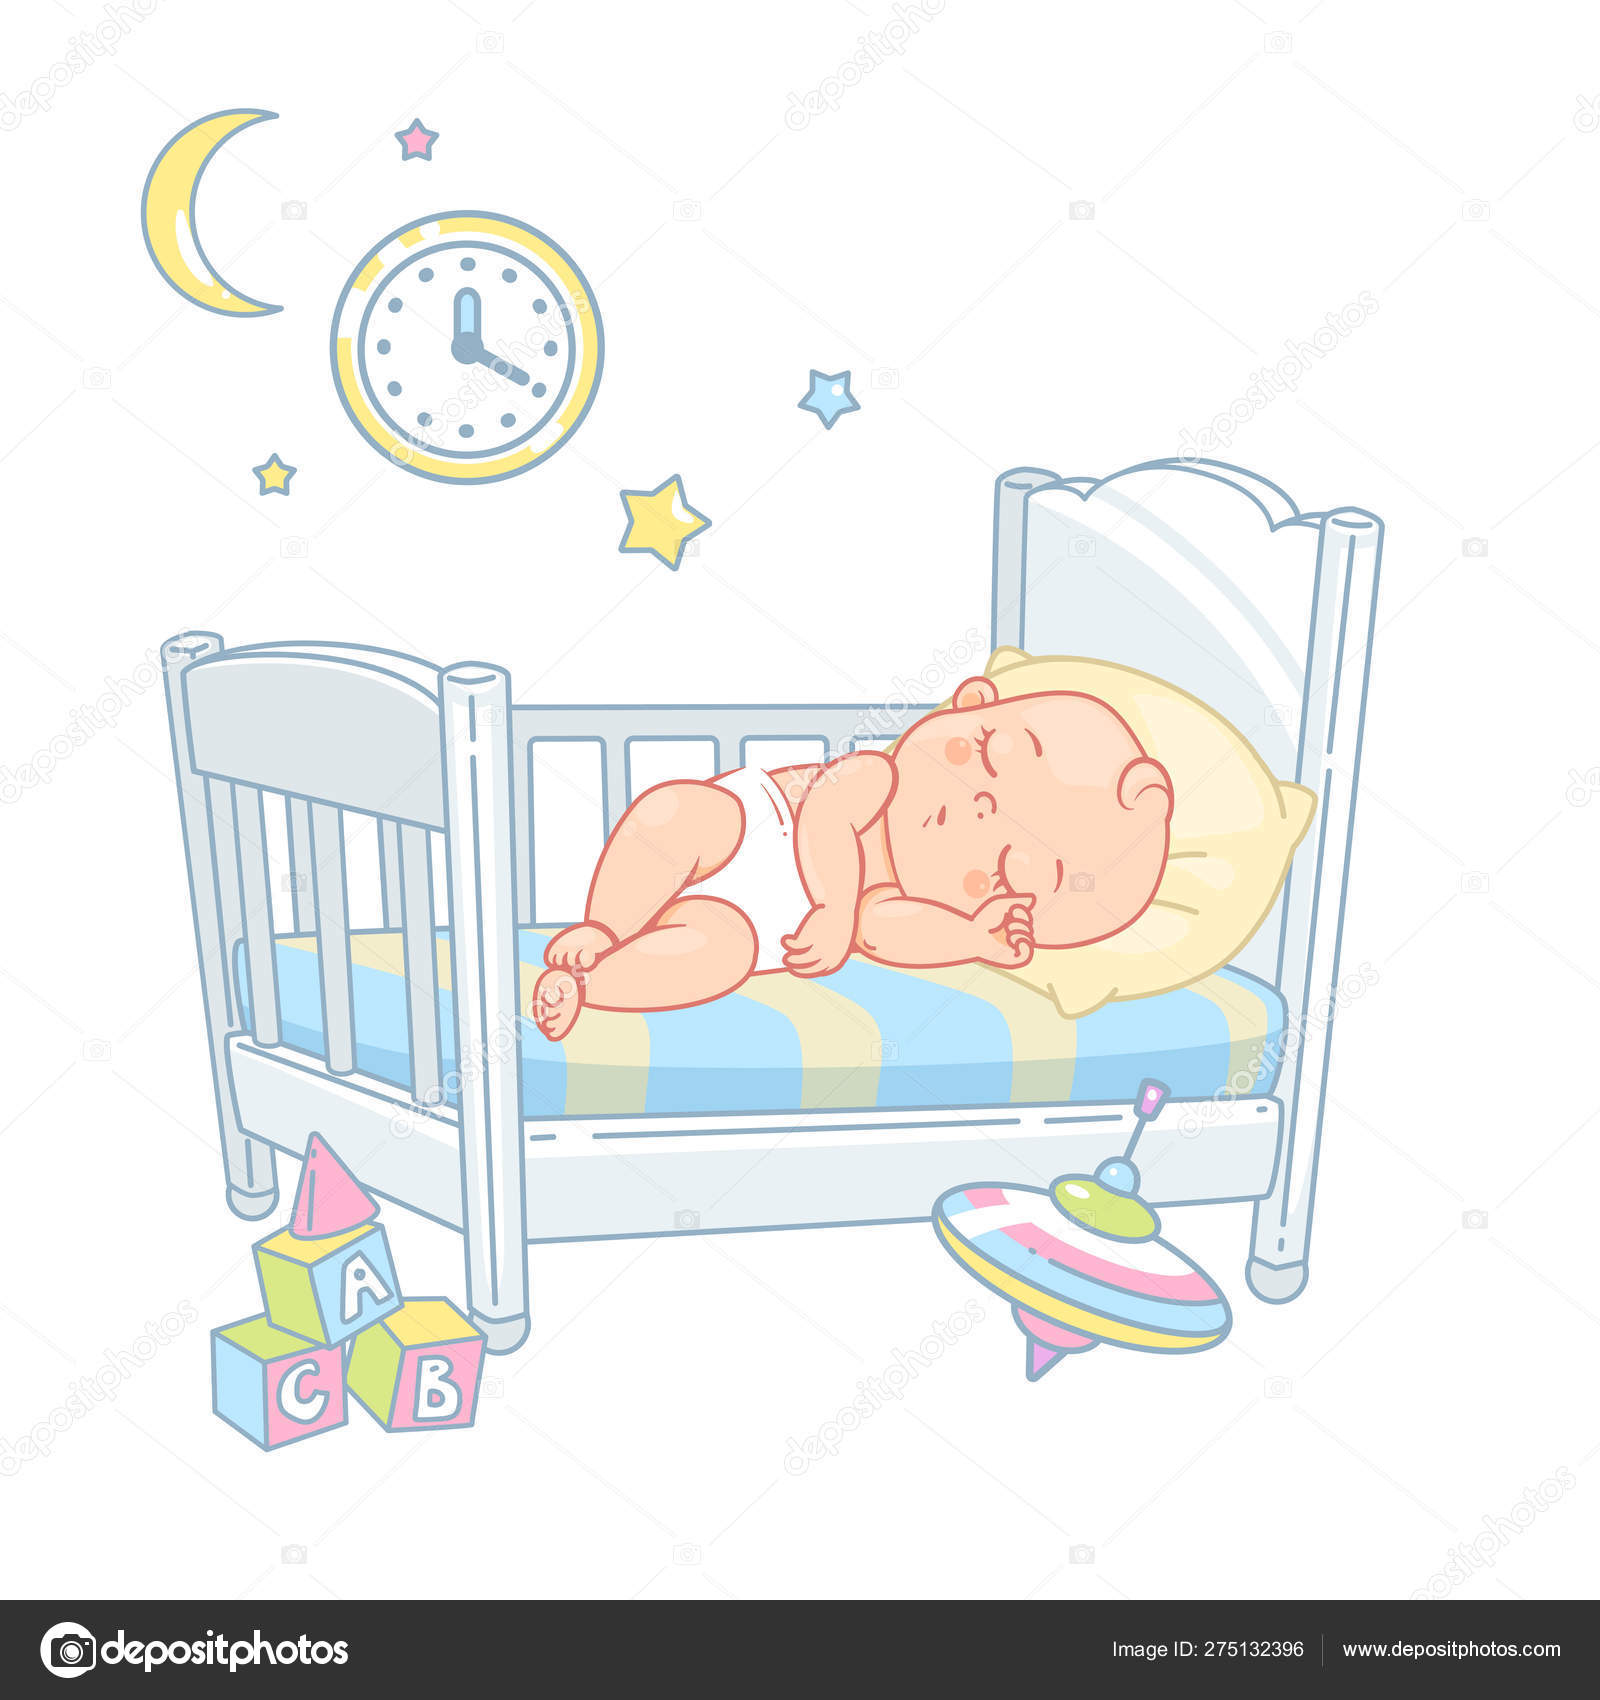 Cute Little Baby Sleep Bed Pretty Child Diaper Sleep Night Stock Vector Royalty Free Vector Image By C Natoushe 275132396